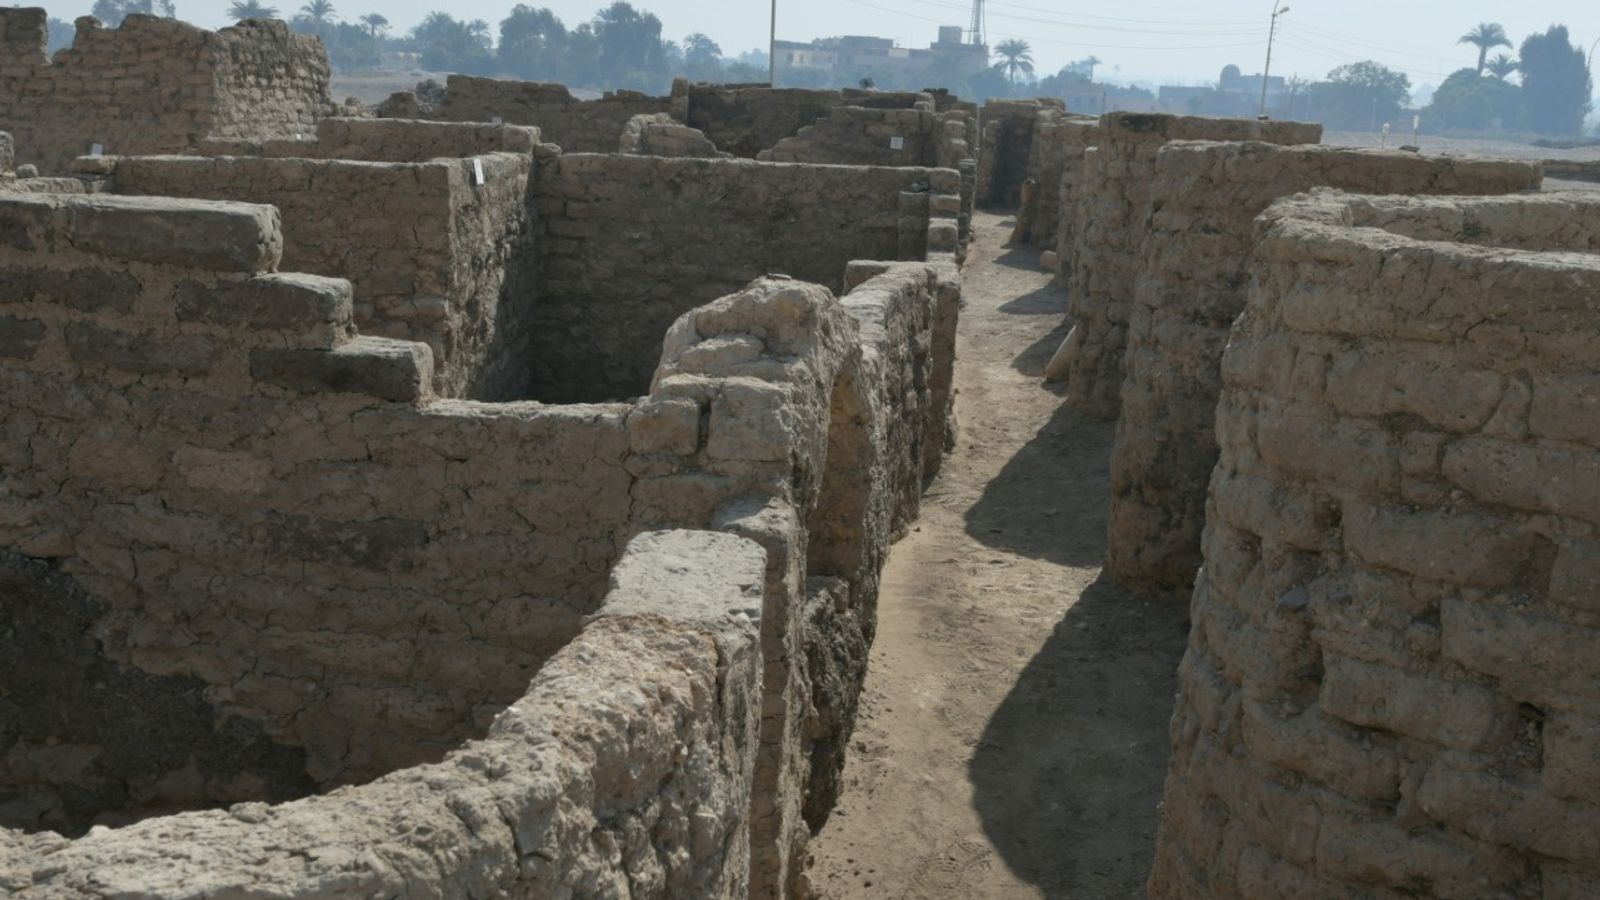 Luxor discovery: 'Ancient Egypt's Pompeii' found as archaeologists uncover 3,400-year-old 'lost golden city'